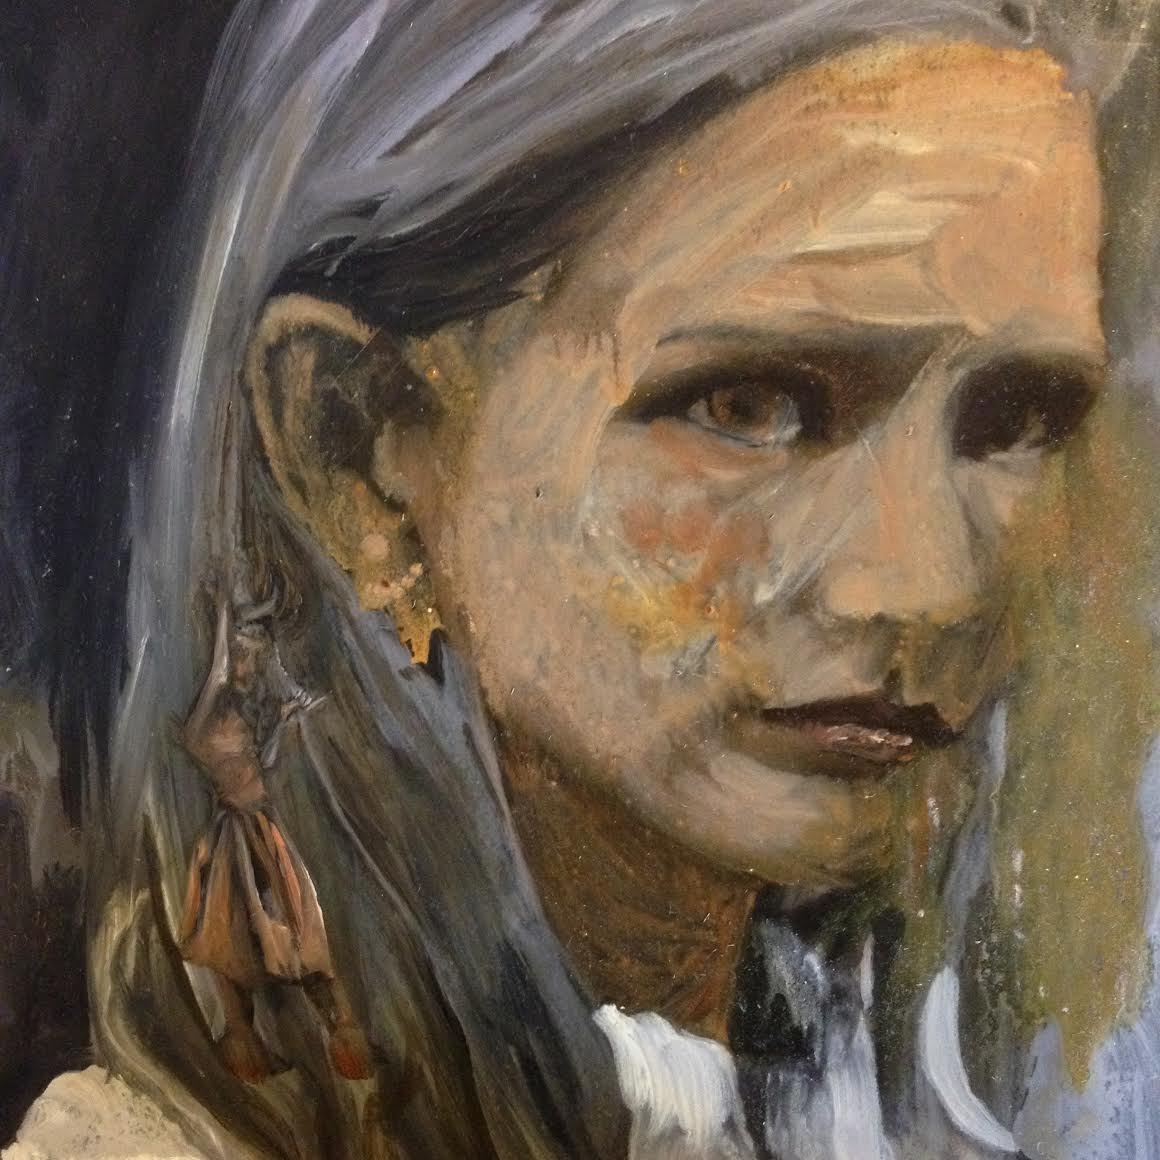 Orange oil painting of a girl with a demon dancing on her shoulder, voodoo style. A Sarah Zar portrait with large brushstrokes.